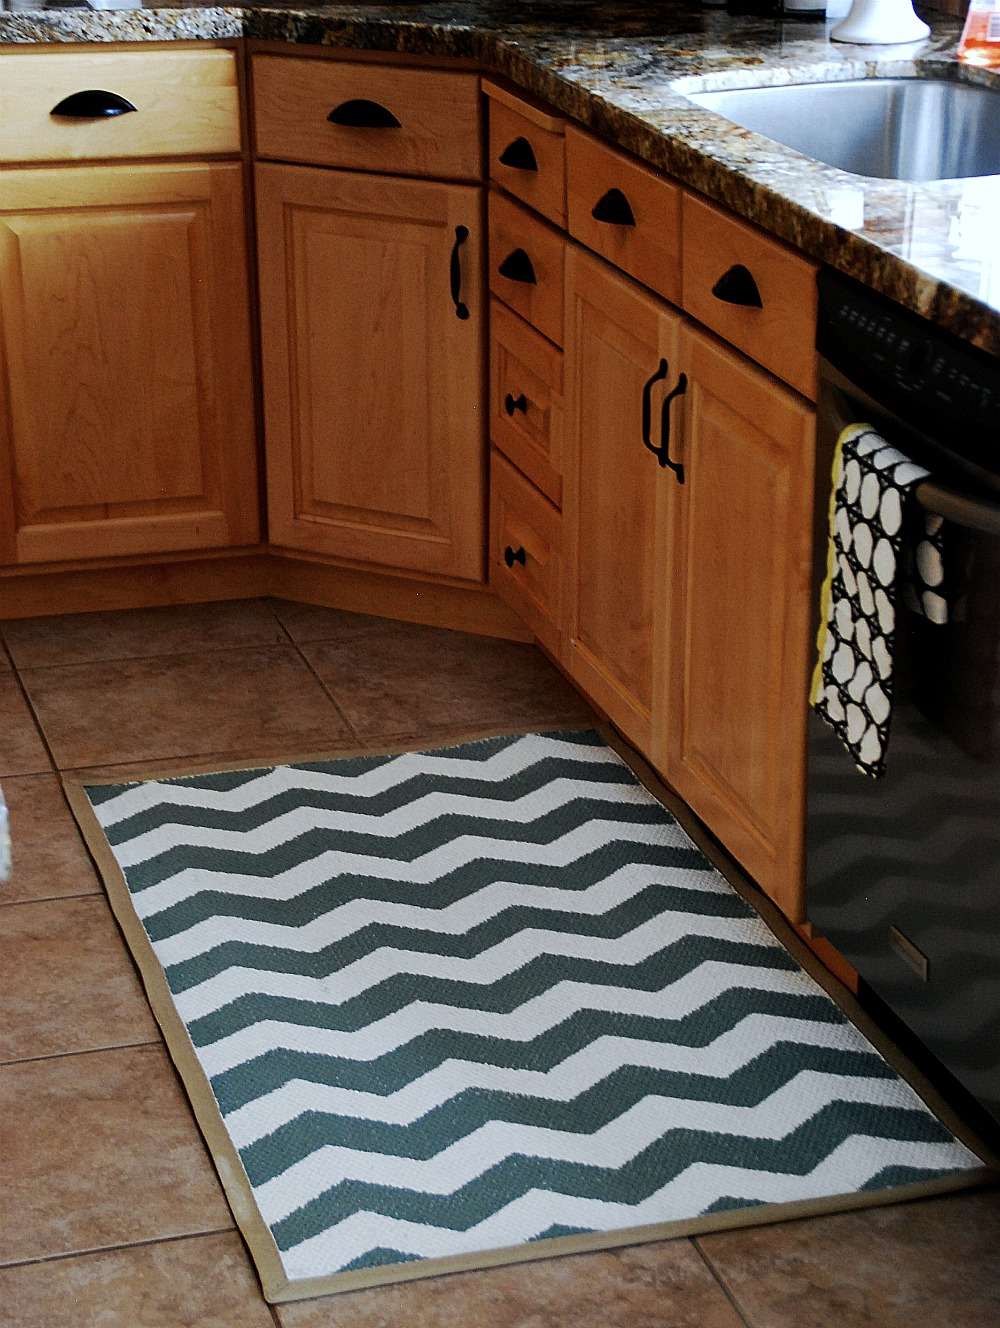 Painted Chevron Rug Reveal Tutorial